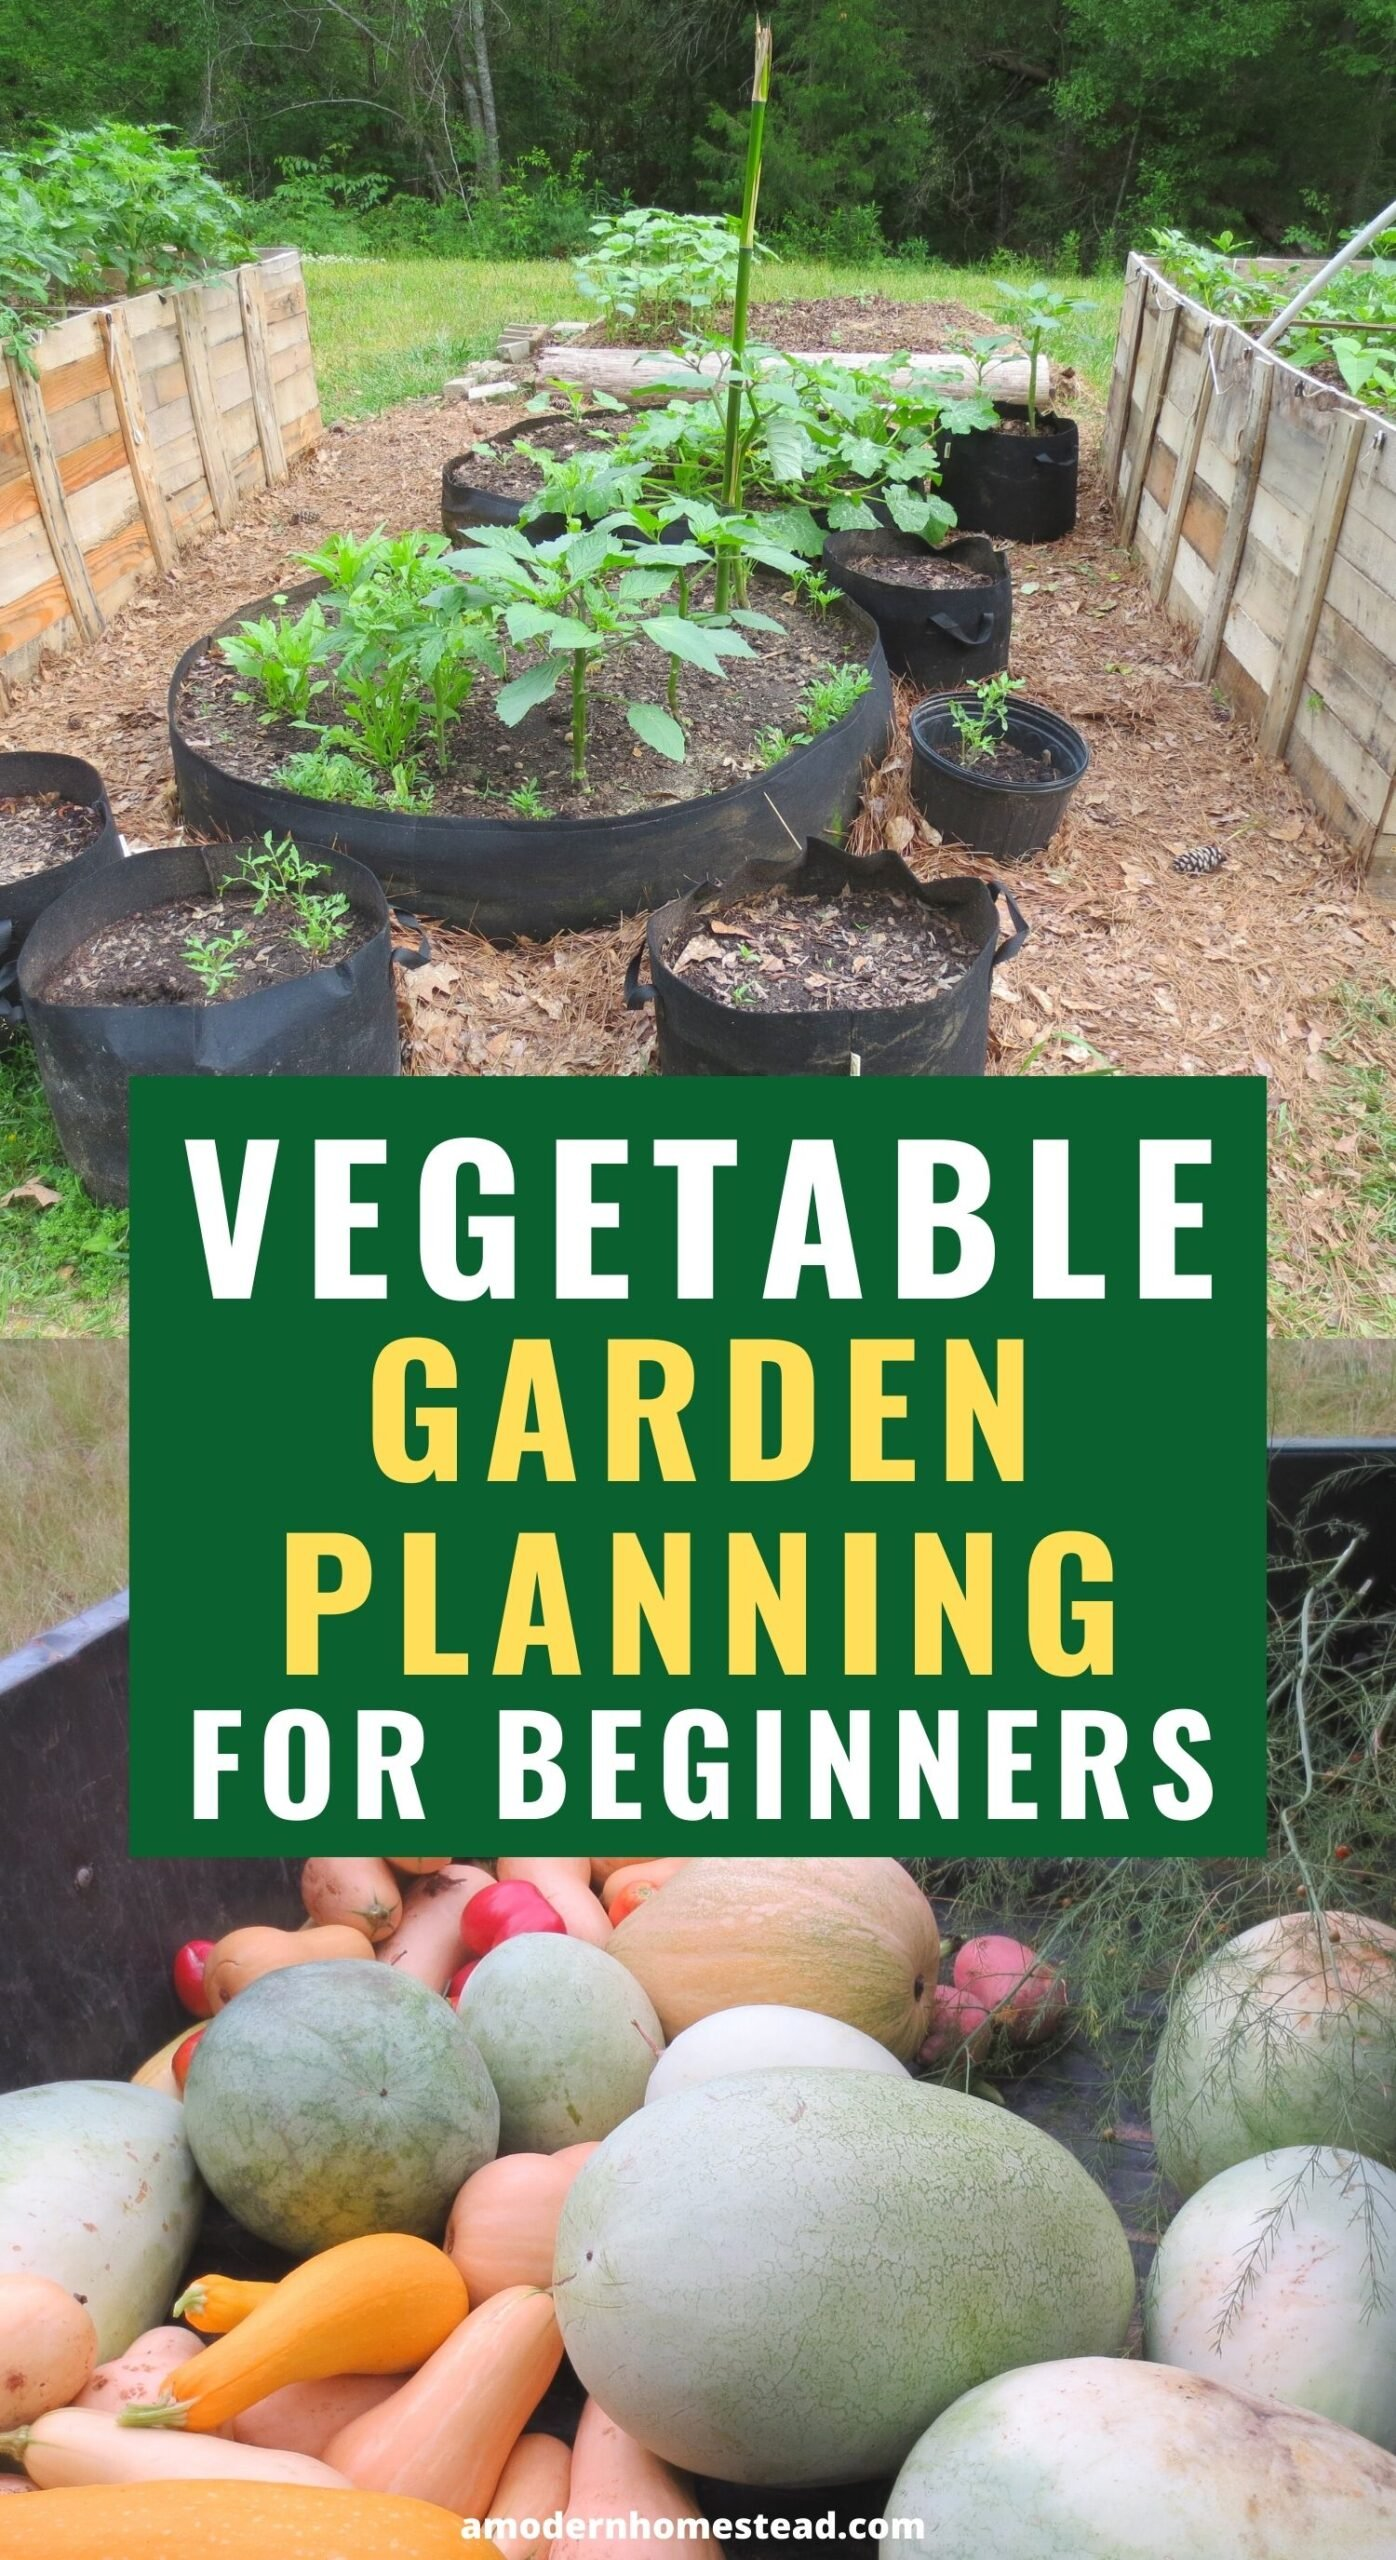 vegetable garden planning for beginners promotional collage